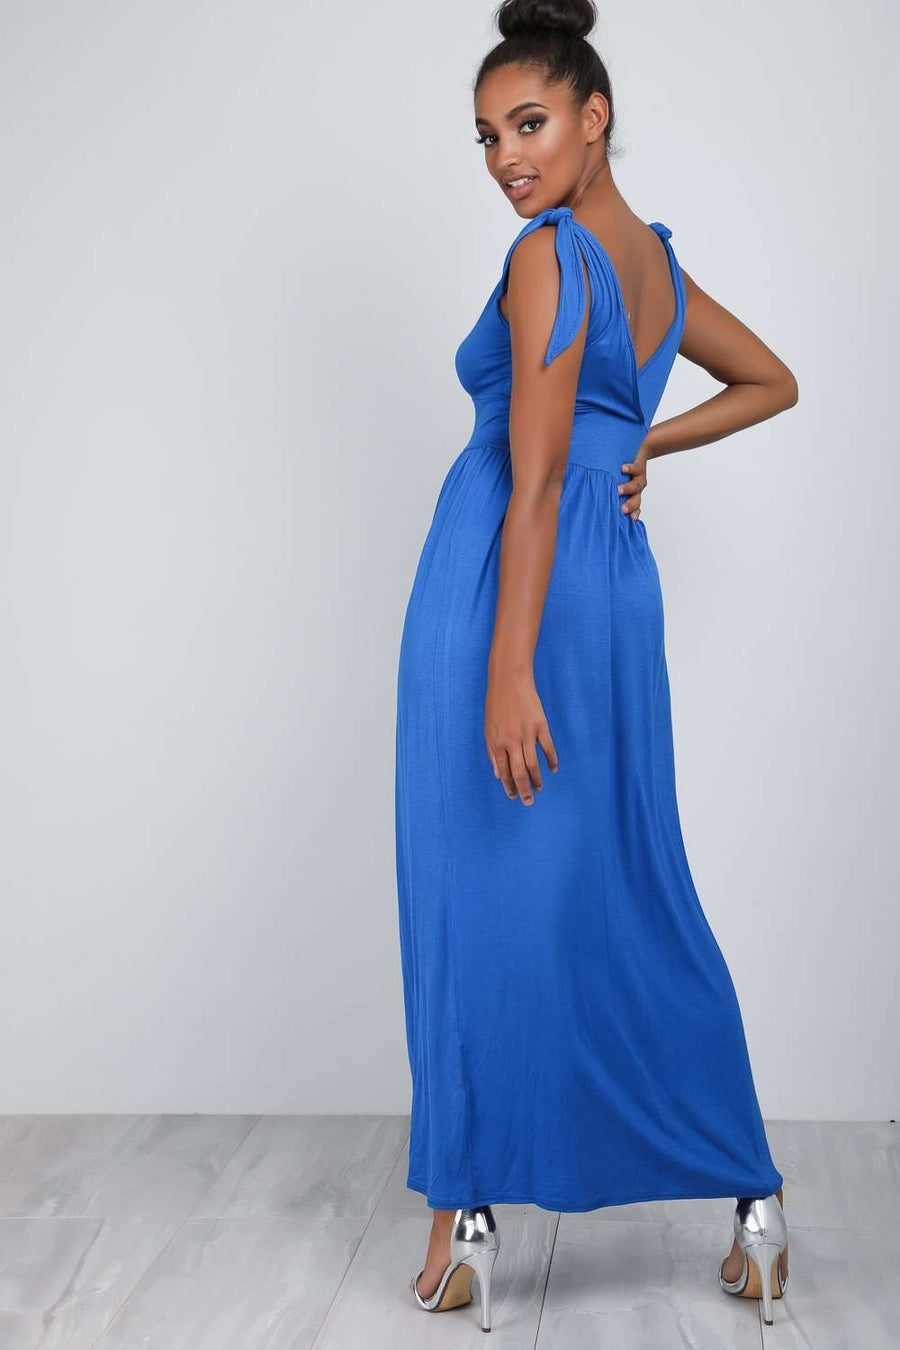 Laila Plunge Wrap Neck Knotted Maxi Dress - bejealous-com